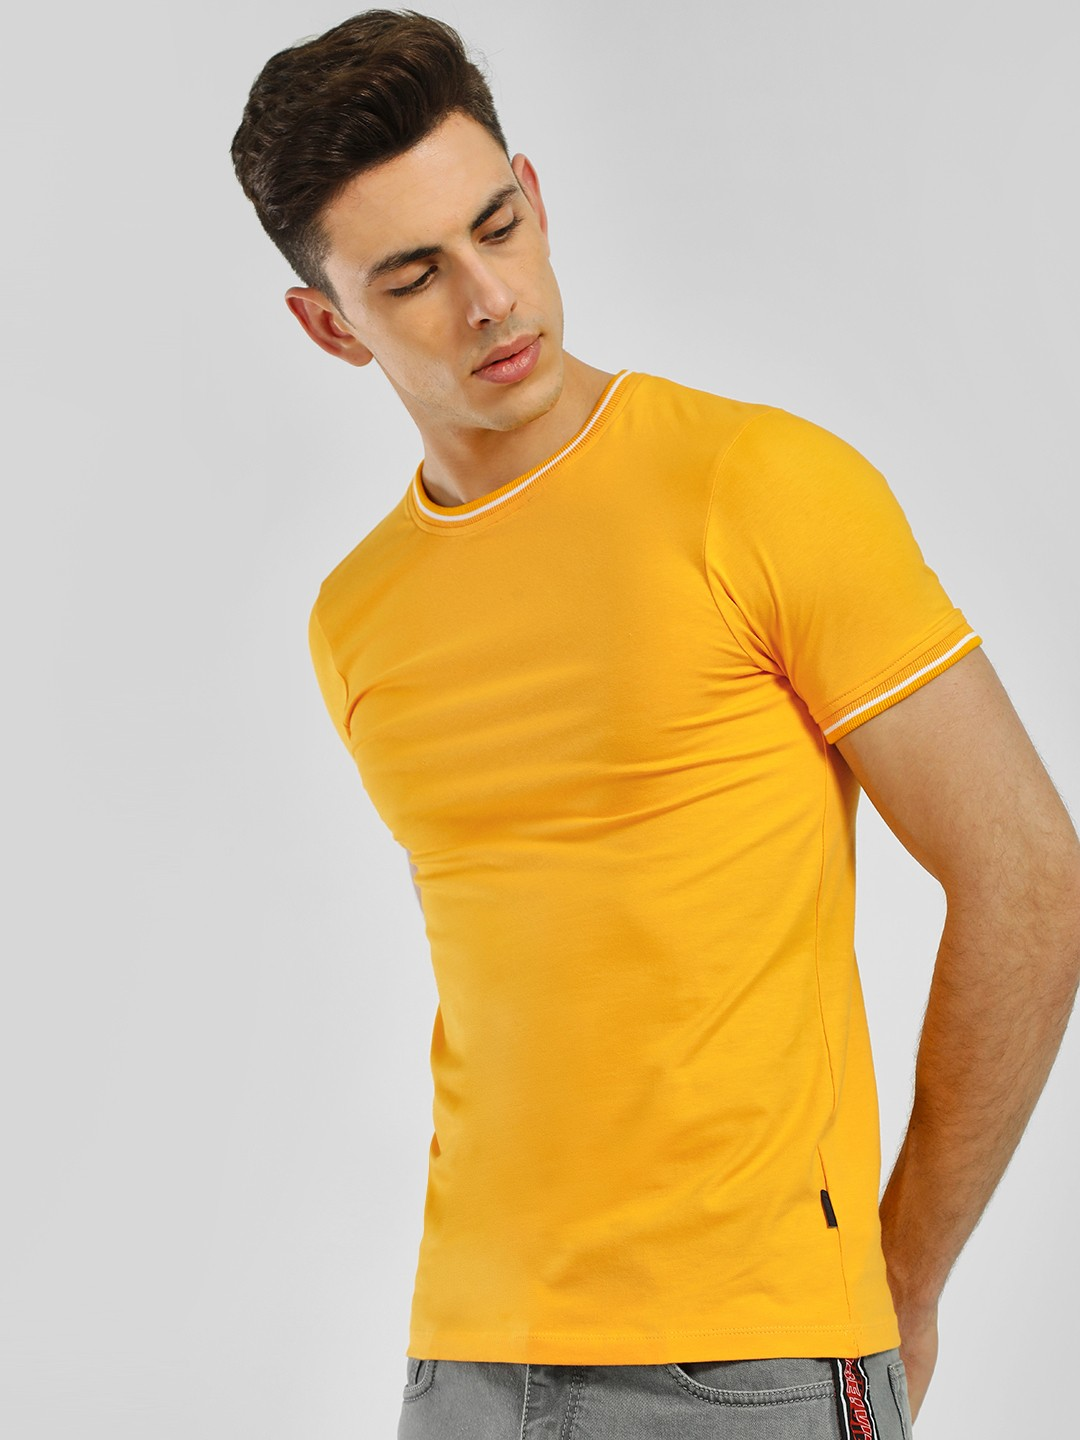 KOOVS Yellow Muscle Fit Ringer T-Shirt 1